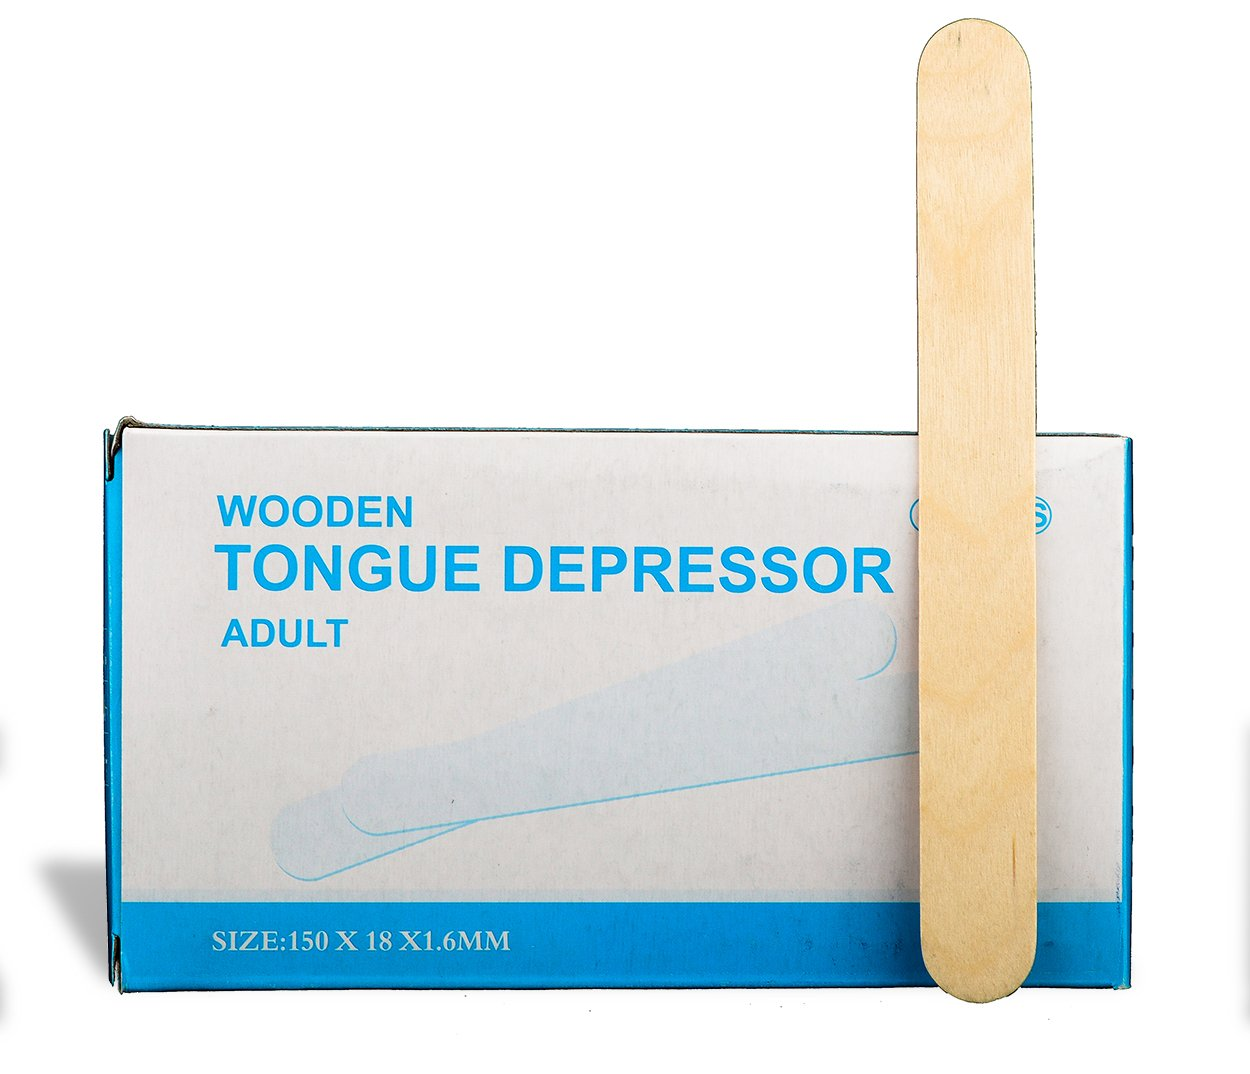 TONGUE DEPRESSOR Chemical FREE _ Non splinter _ Non-Sterile _ 6 inches _ 20 BOXES = 2000 PCS _ MADE OF HIGH GRADE BIRCH, WOODEN CRAFT STICKS. Manufactured By P&P Medical Surgical LLC